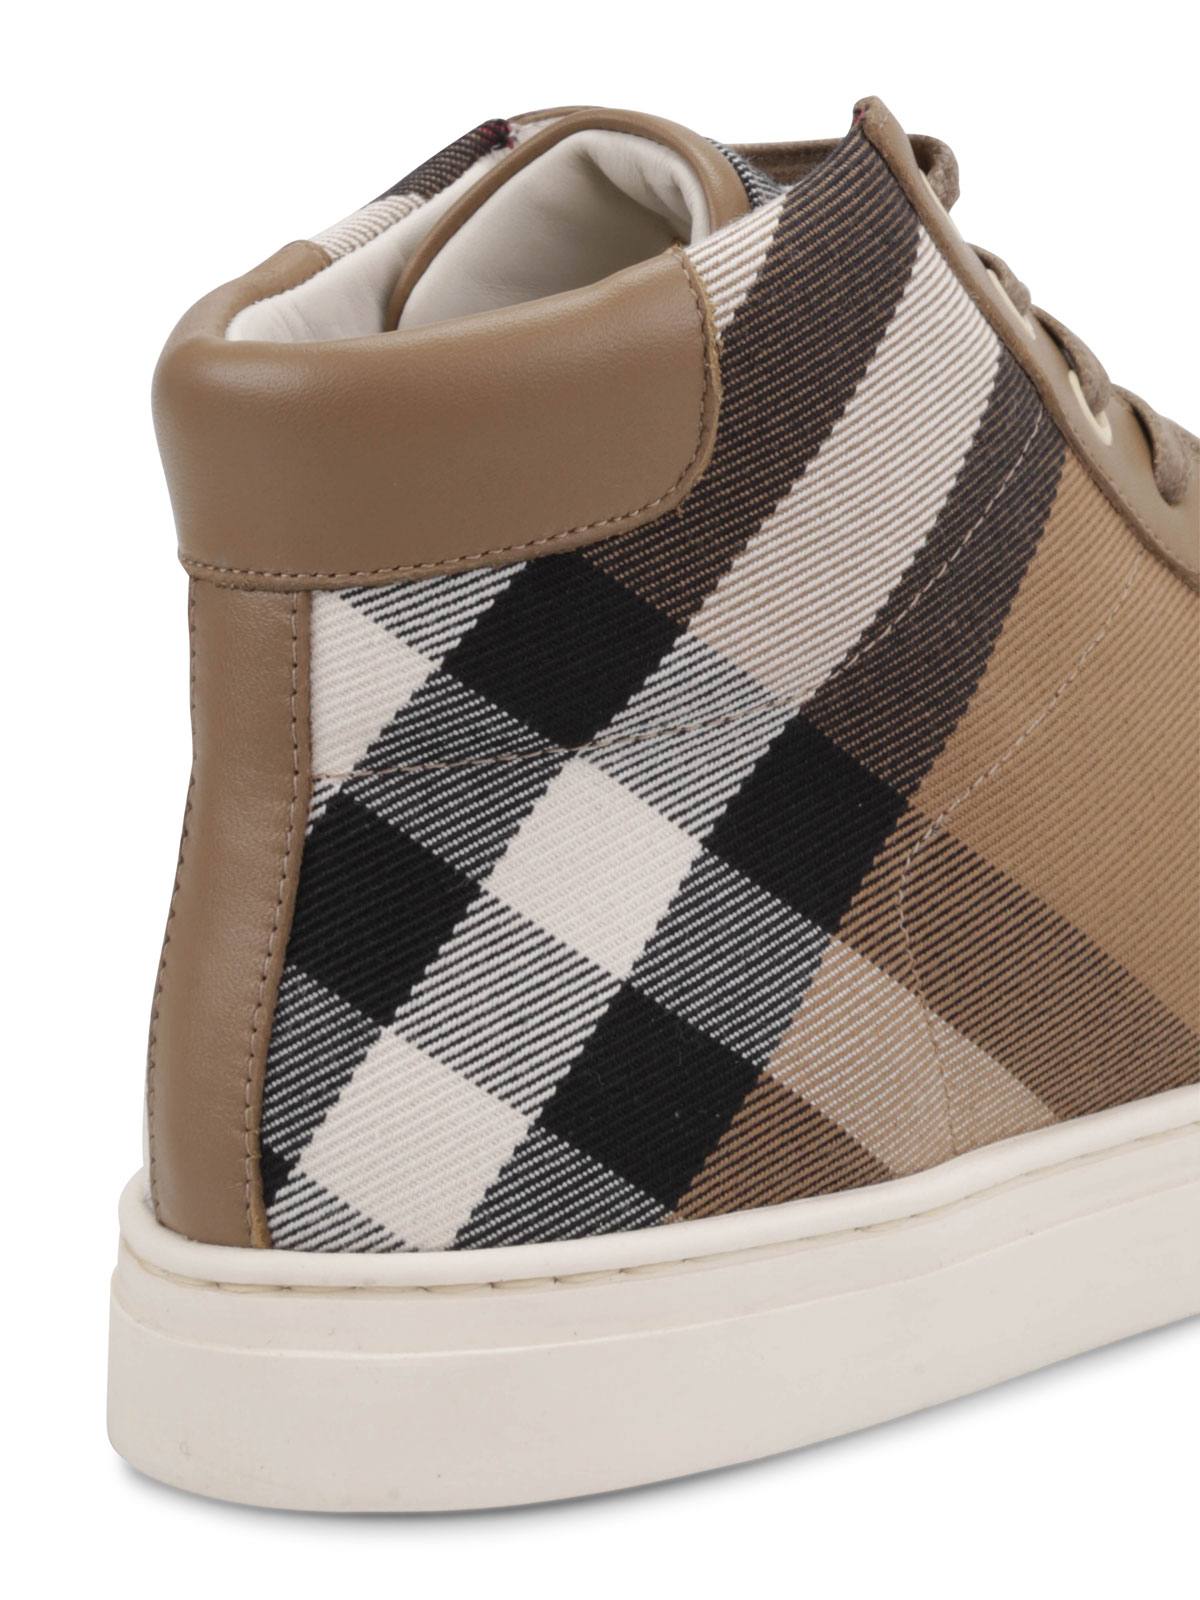 burberry sneakers for sale. Black Bedroom Furniture Sets. Home Design Ideas